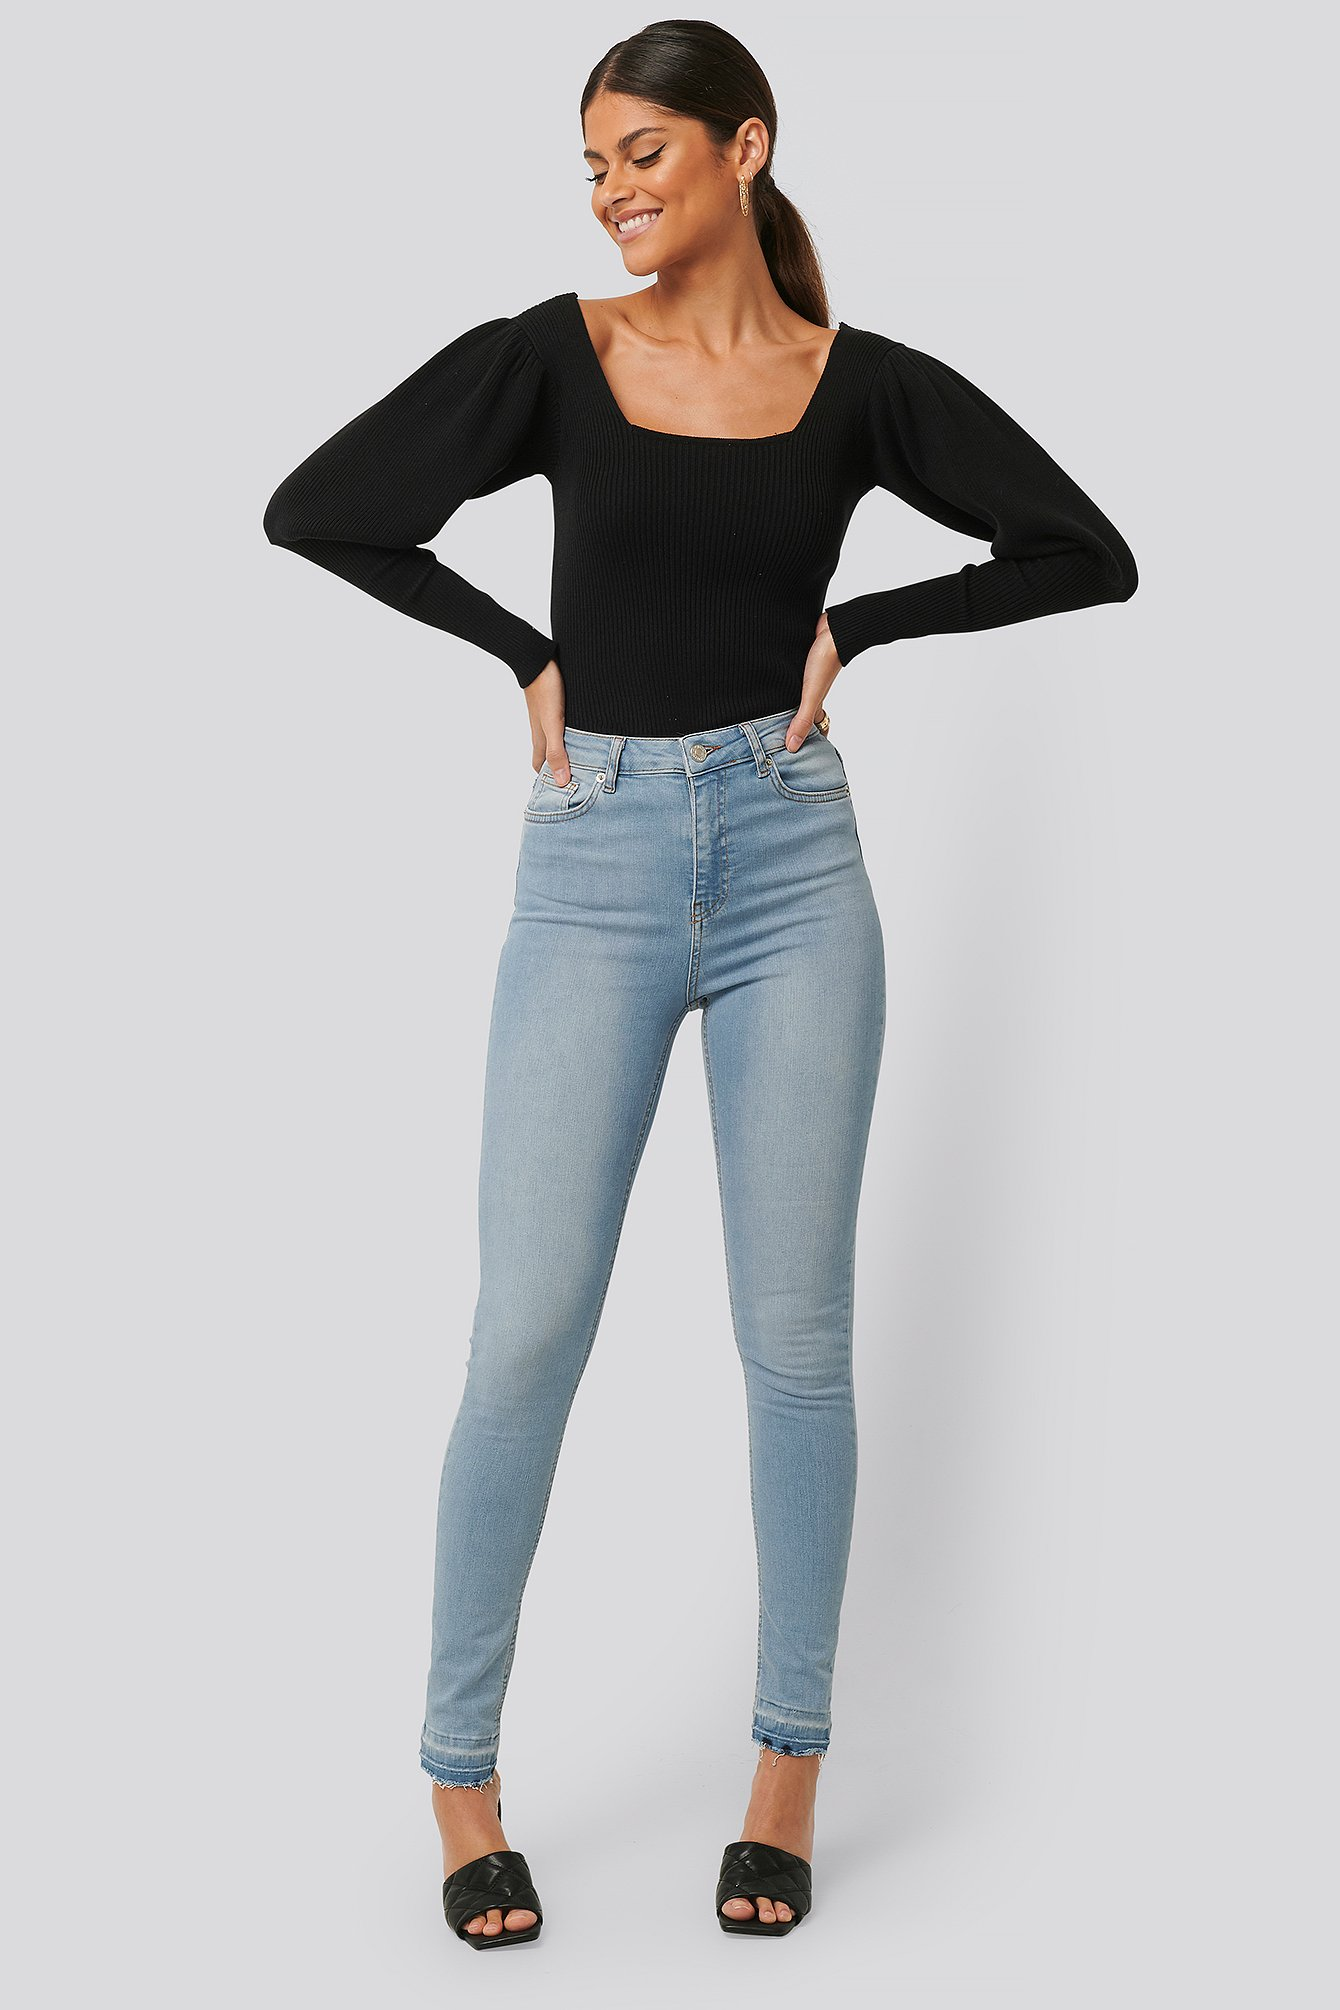 Light Blue Skinny High Waist Open Hem Jeans Tall